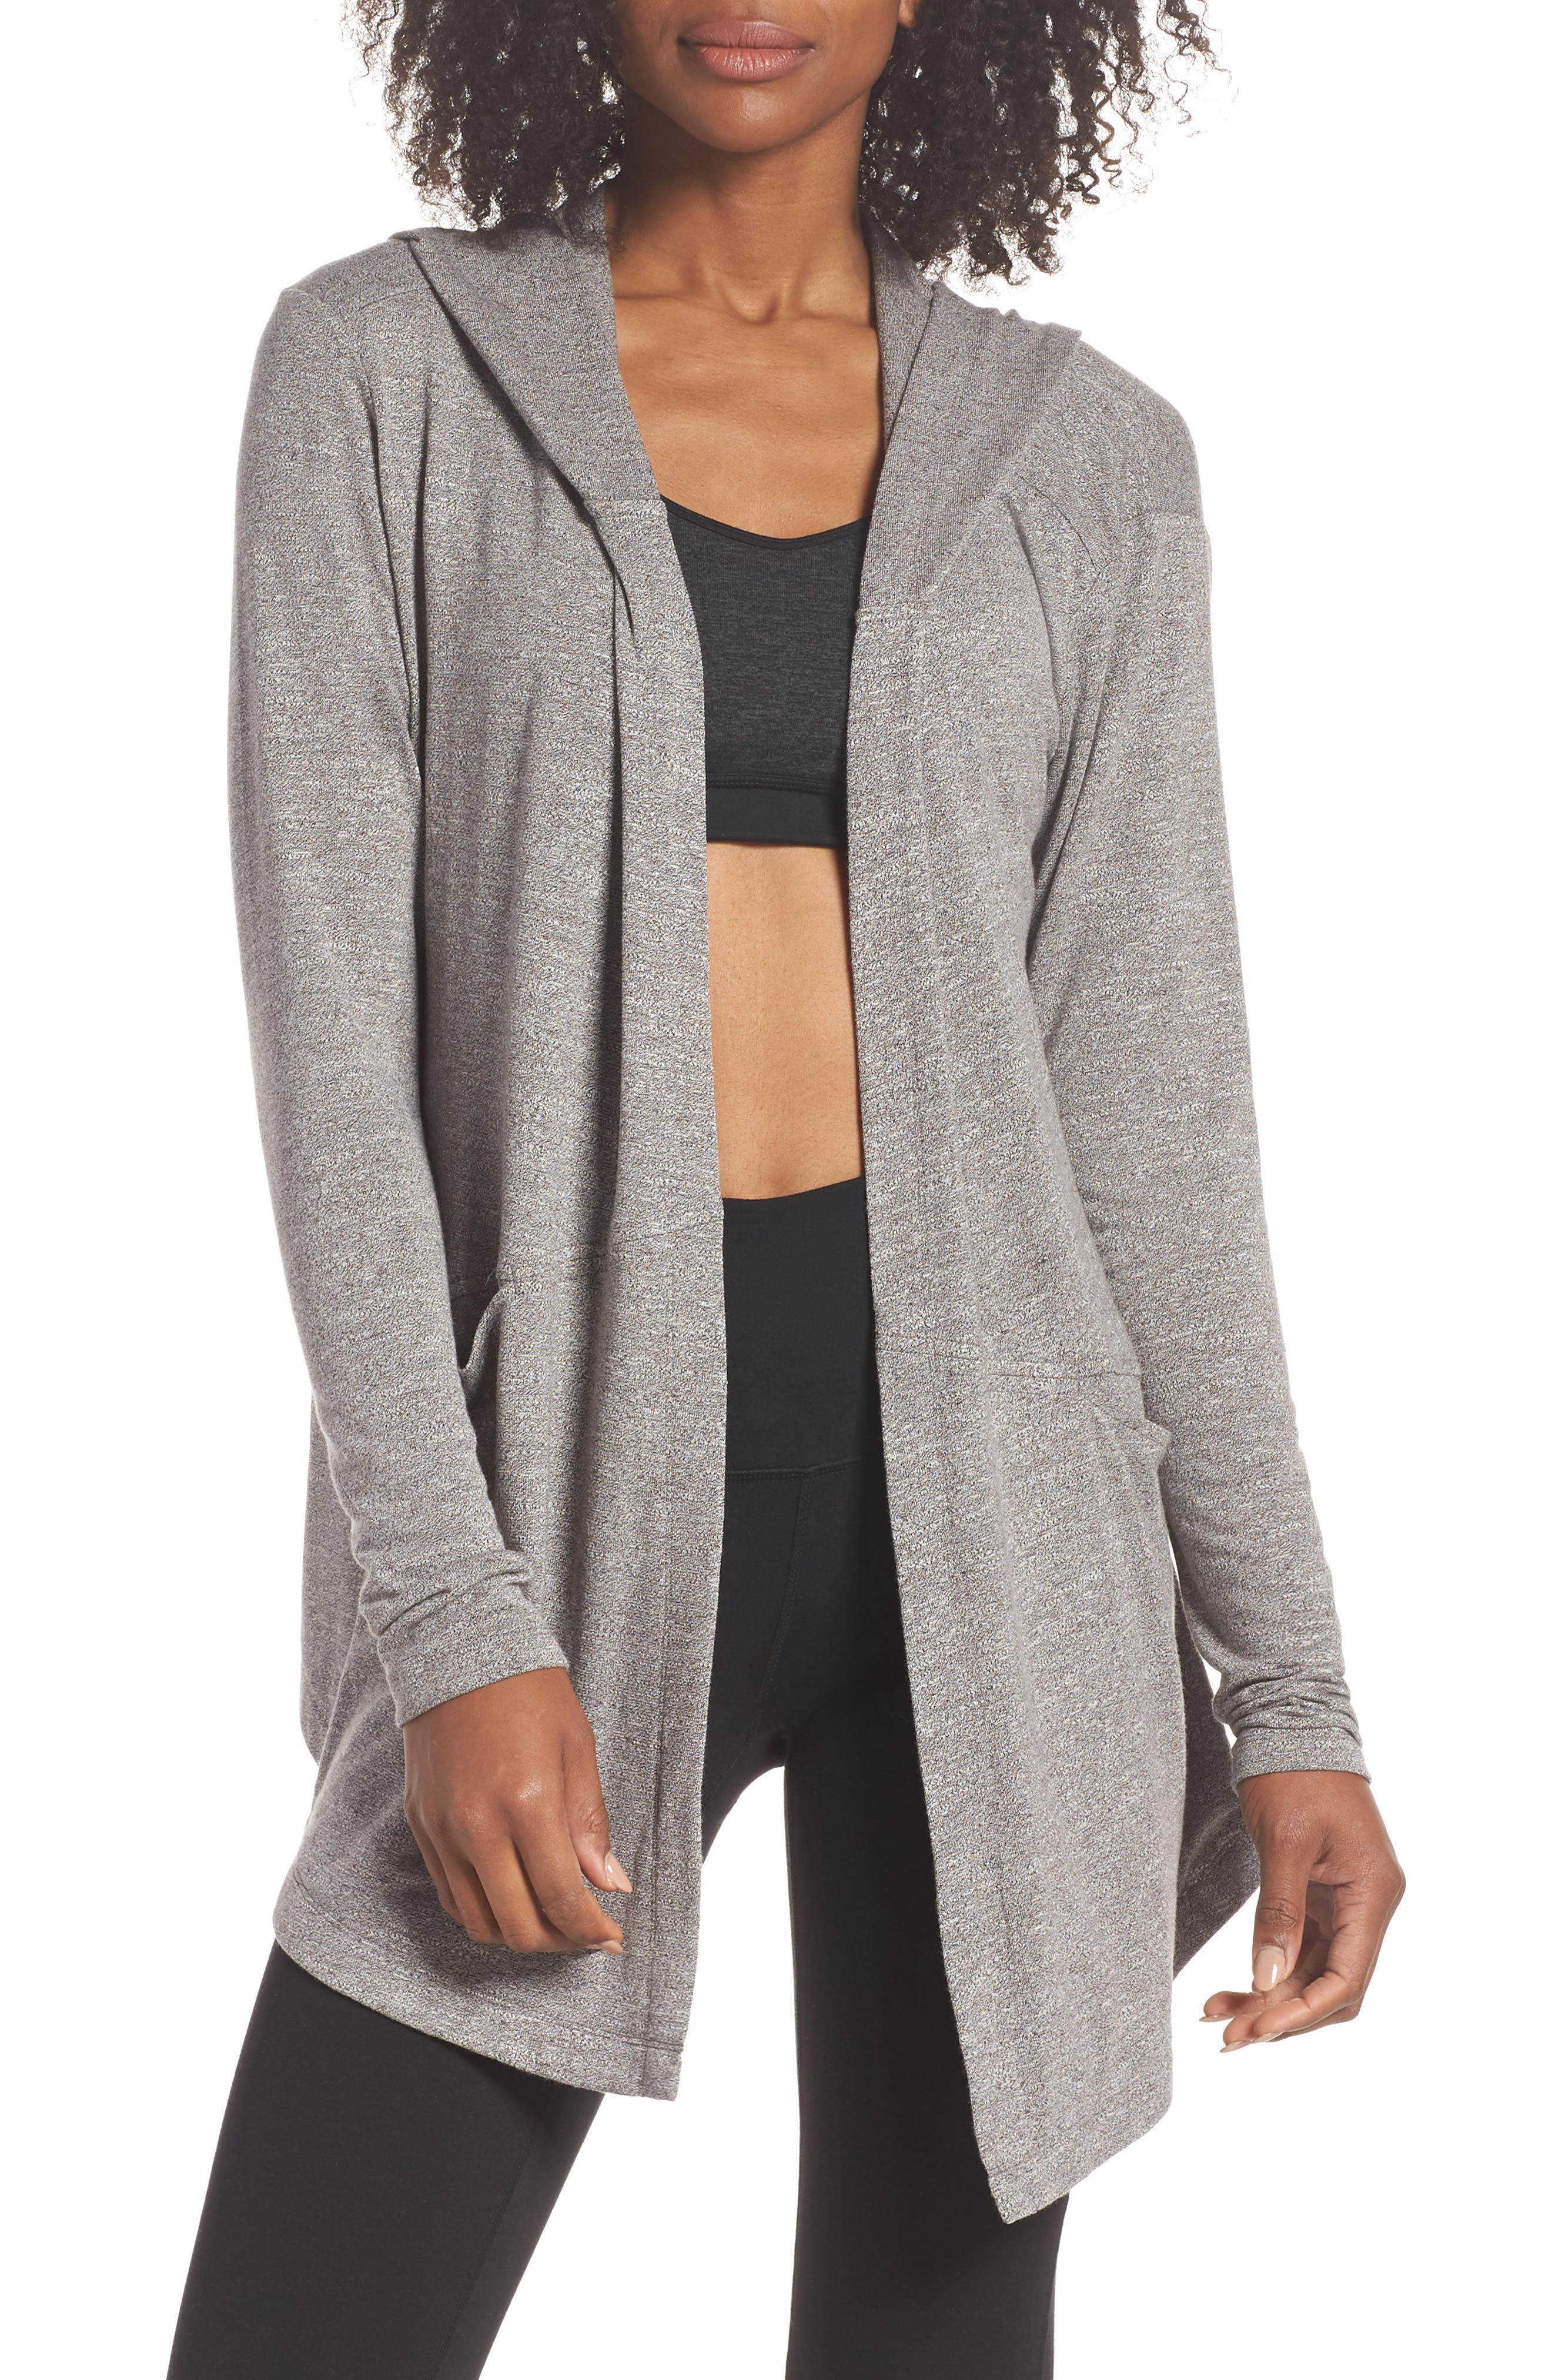 After Class Hooded Cardigan,                             Main thumbnail 1, color,                             GREY DARK HEATHER